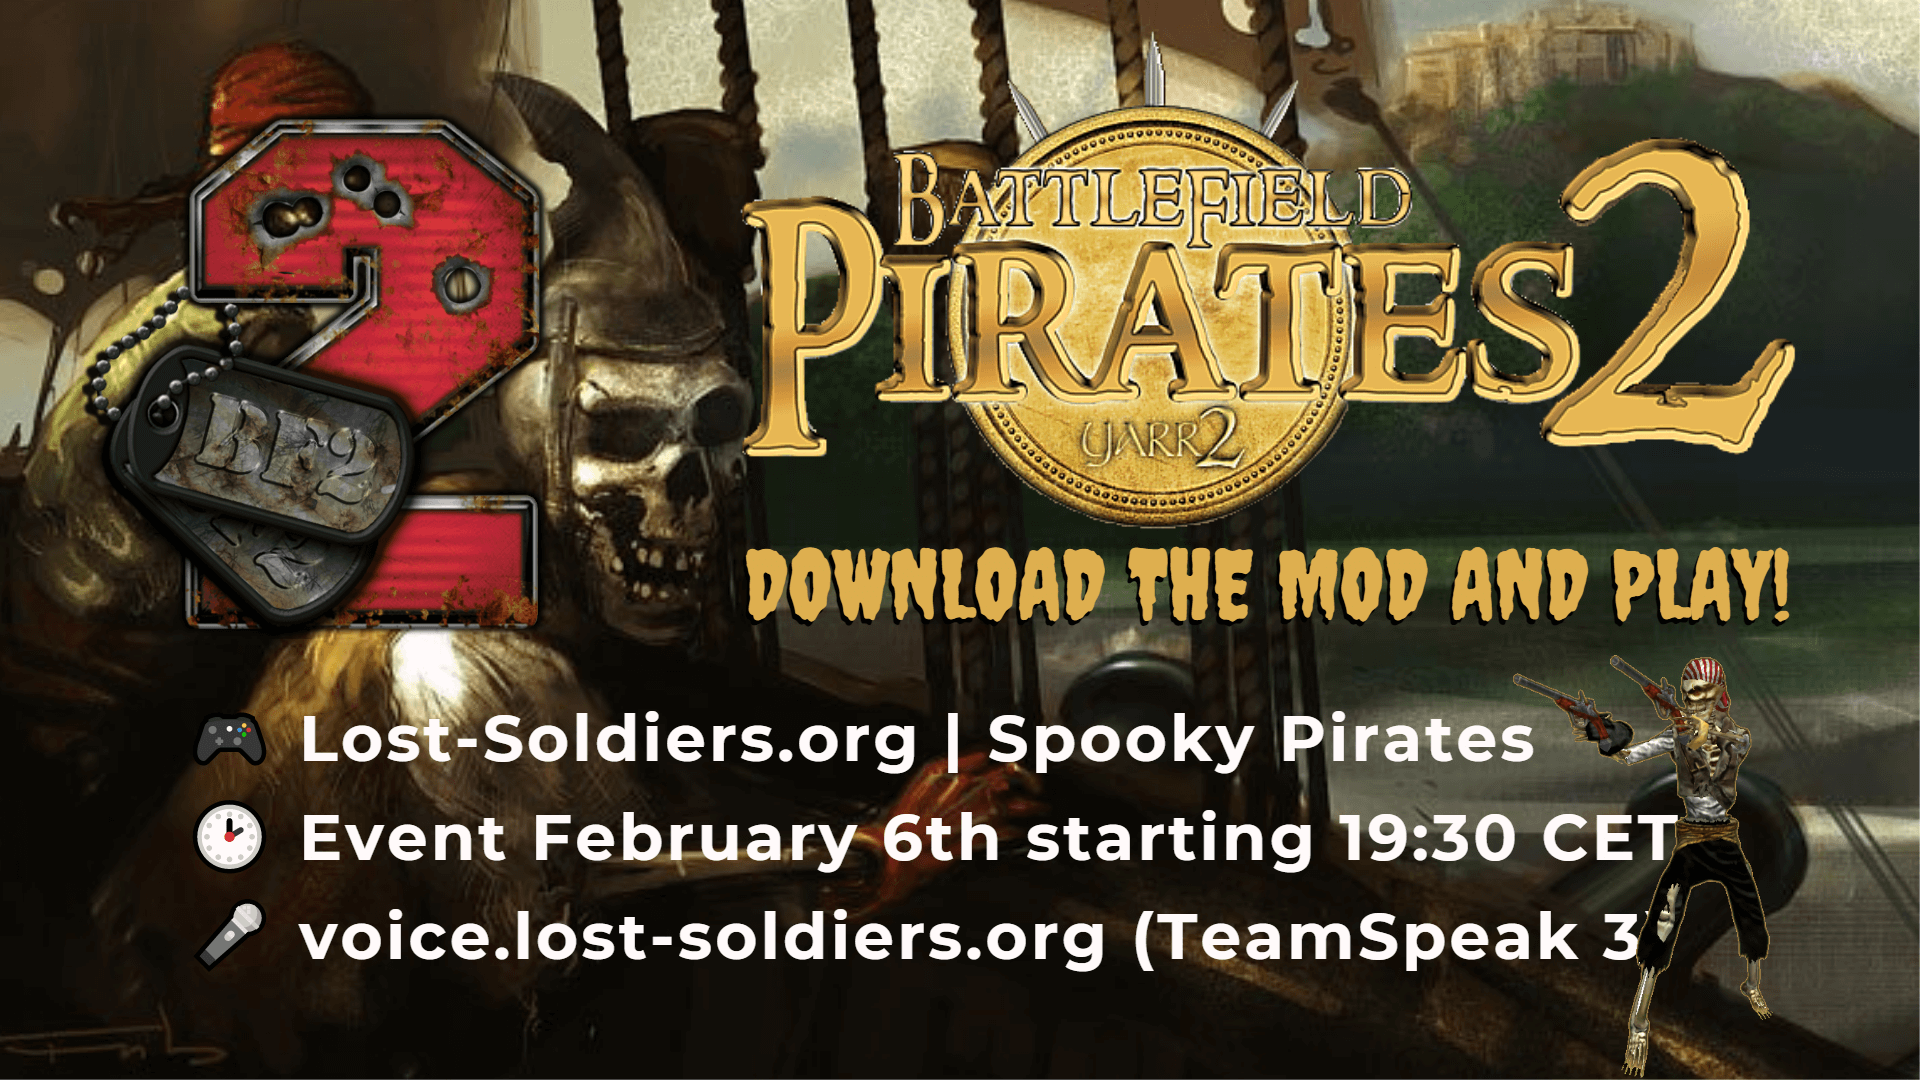 https://www.lost-soldiers.org/images/news-pics/Halloween-Pirates-Night-2021-min.png